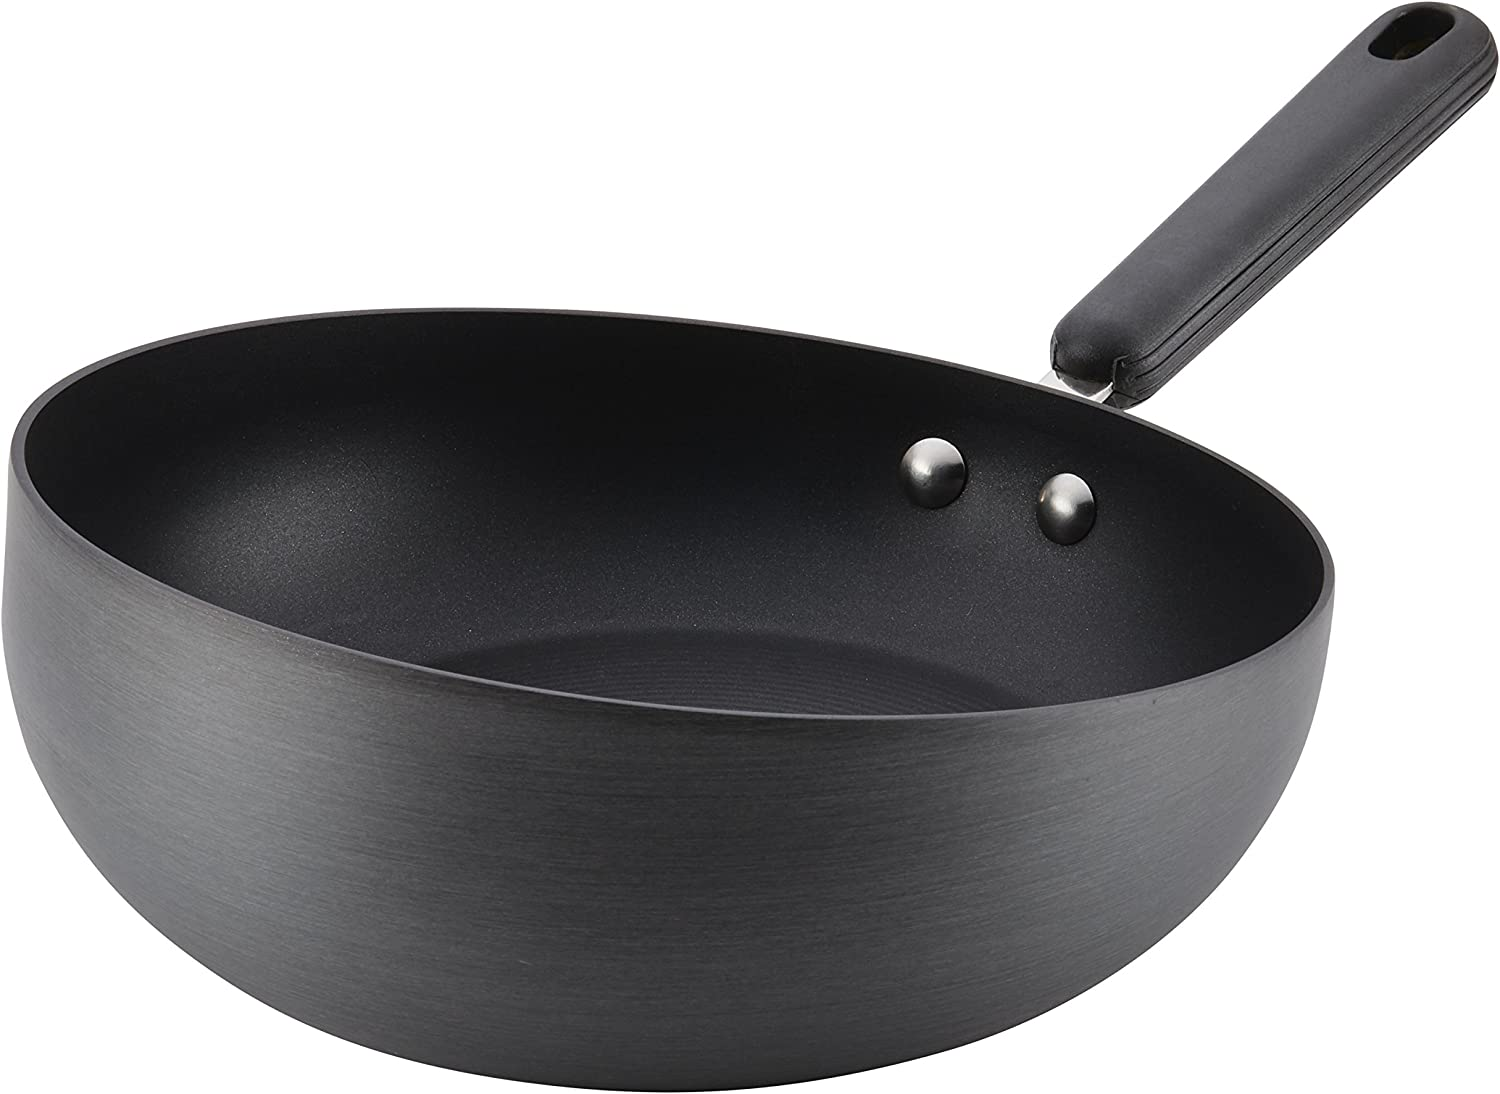 Circulon 83849 Classic Hard Anodized Nonstick Frying Pan / Fry Pan / Hard Anodized Skillet - 10.5 Inch, Gray